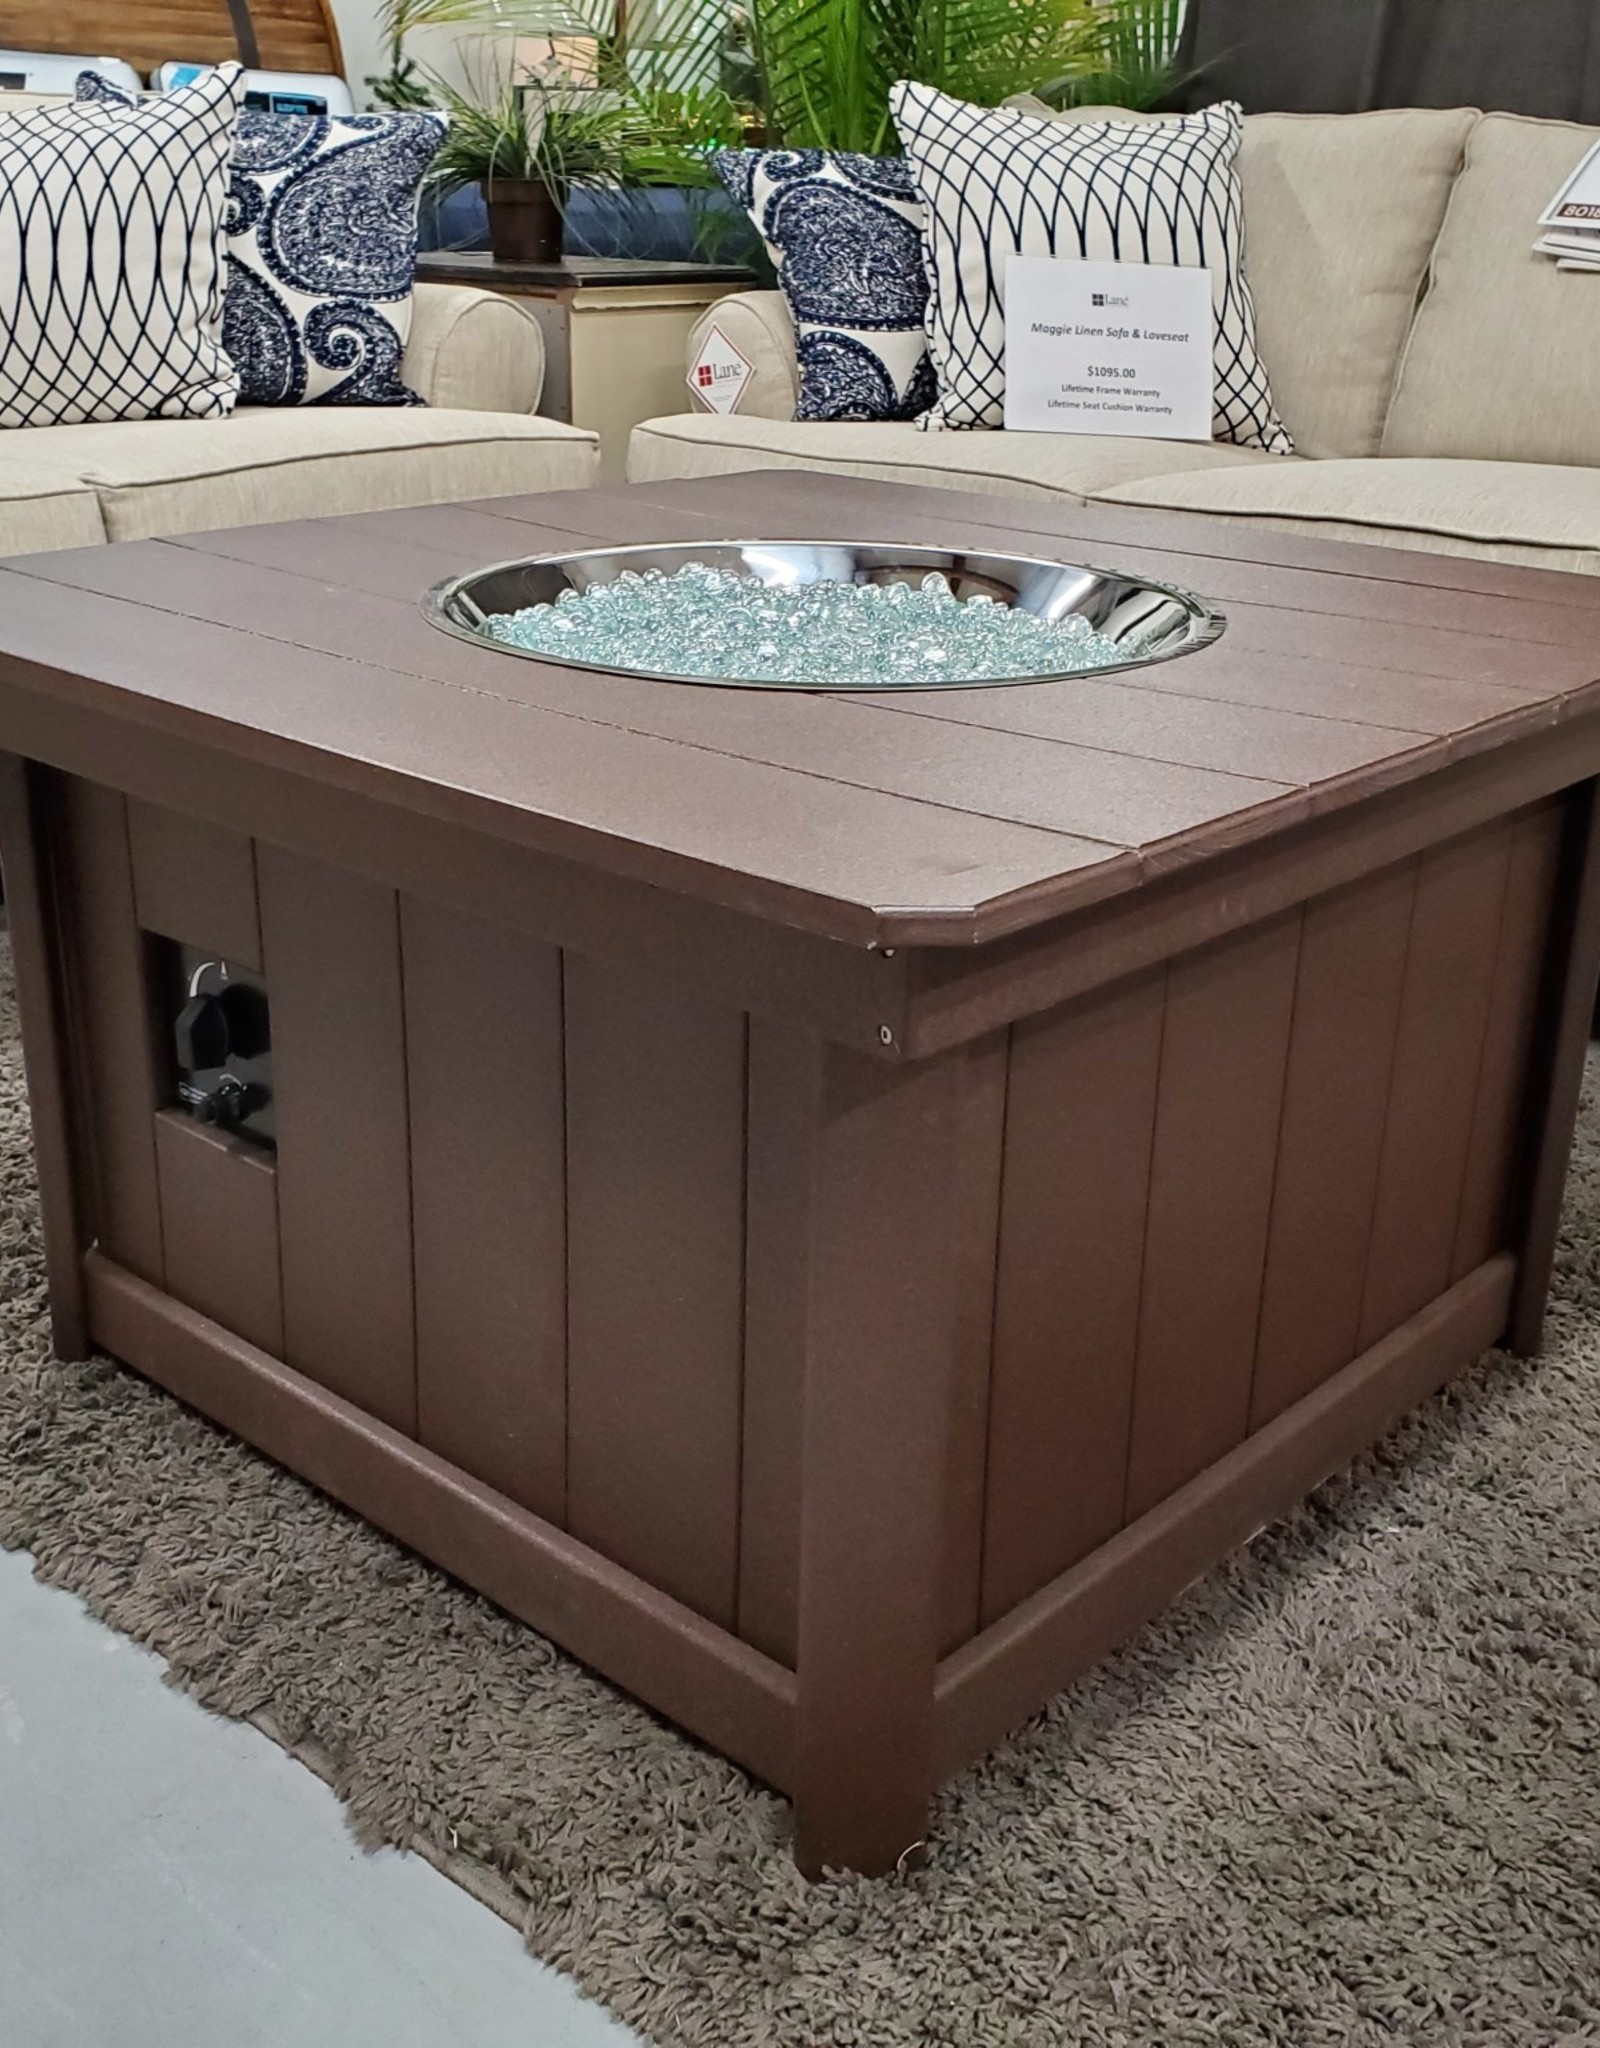 Home Decor Outdoor Enclosed Ground-Level Fire Pit